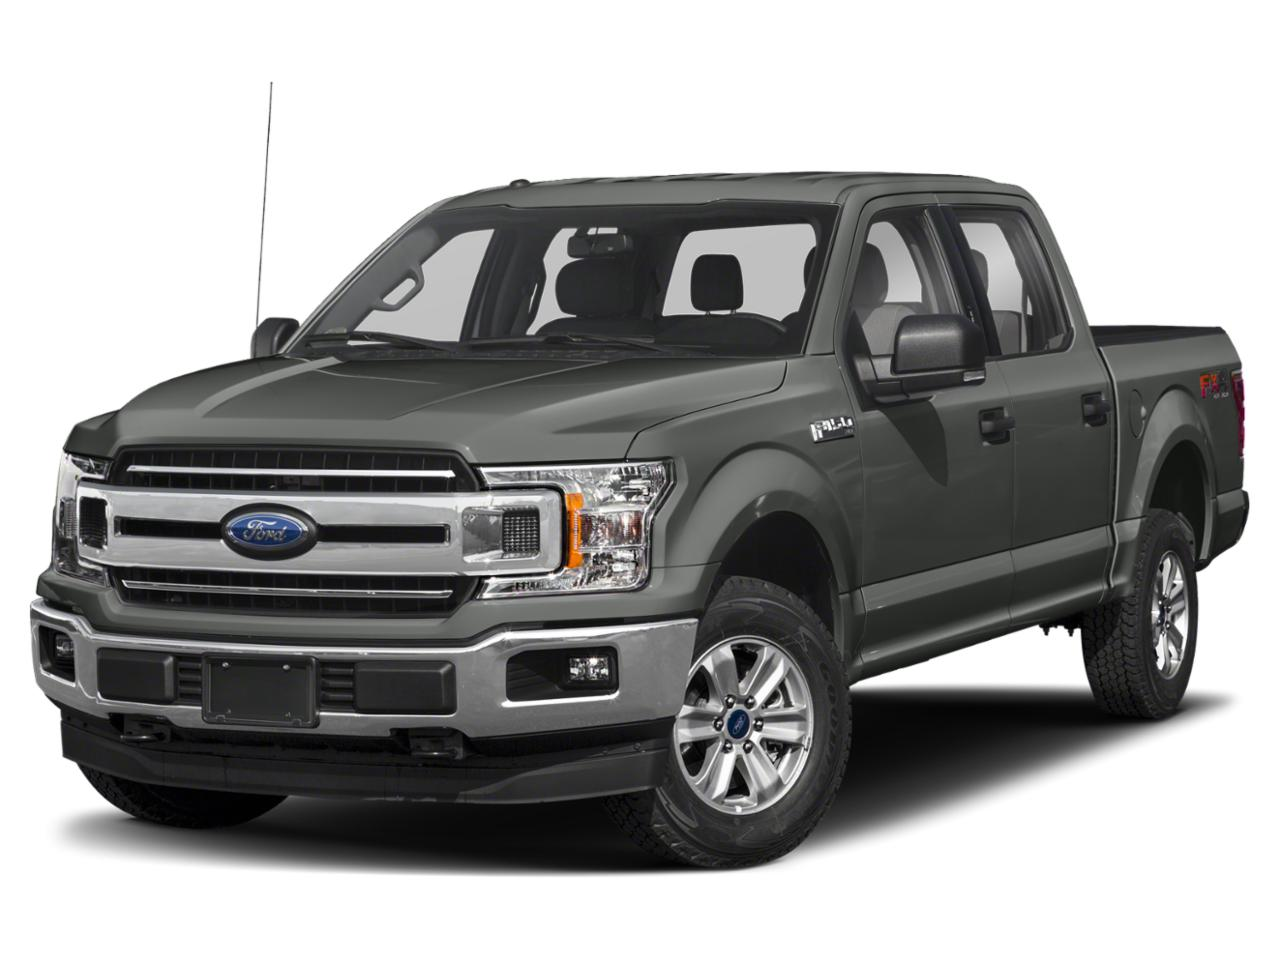 2020 Ford F-150 Vehicle Photo in Oshkosh, WI 54904